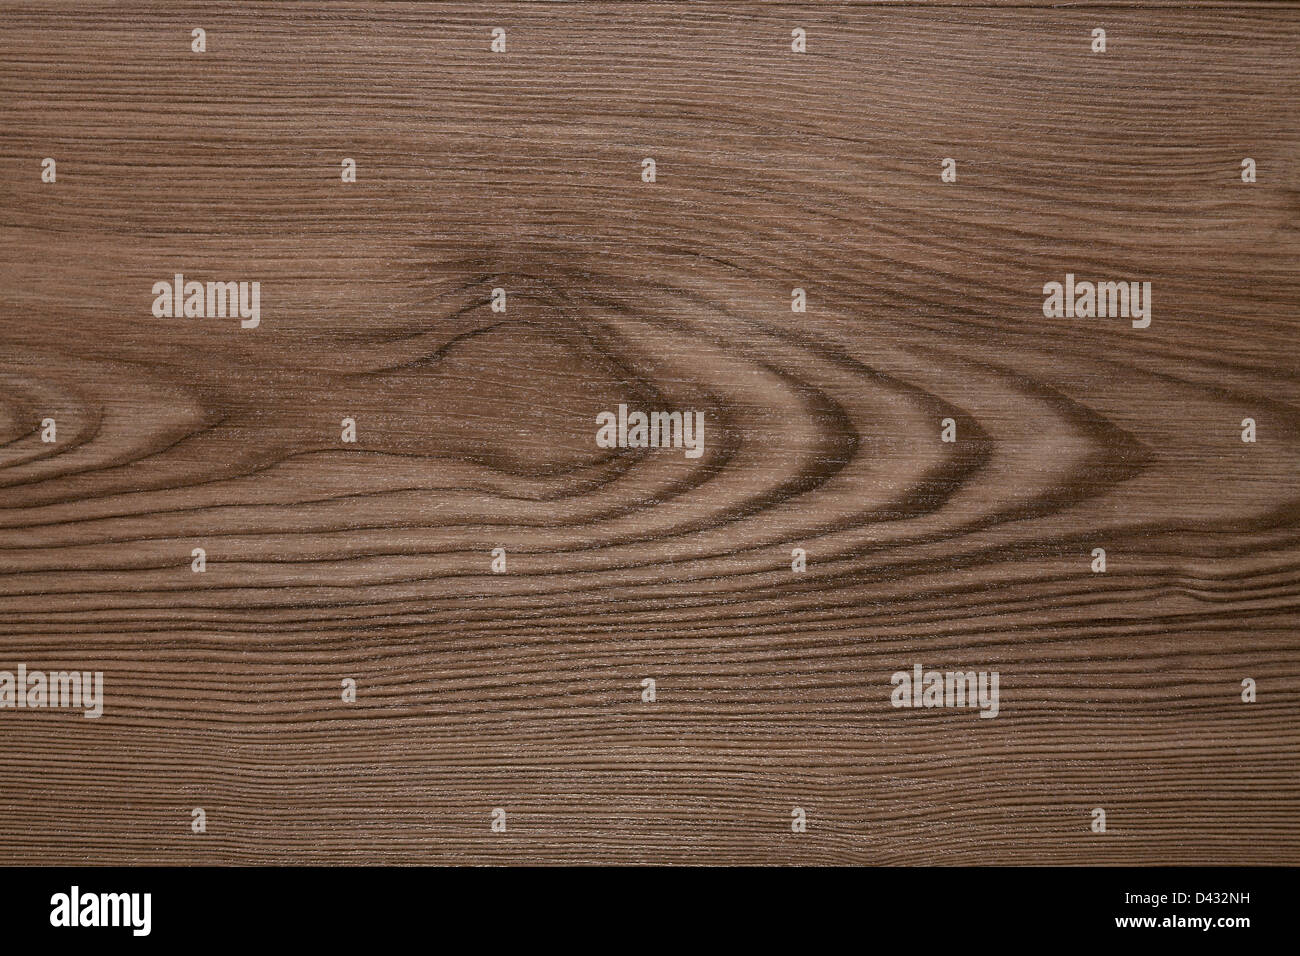 The texture of the wood planks from the old oak tree - Stock Image